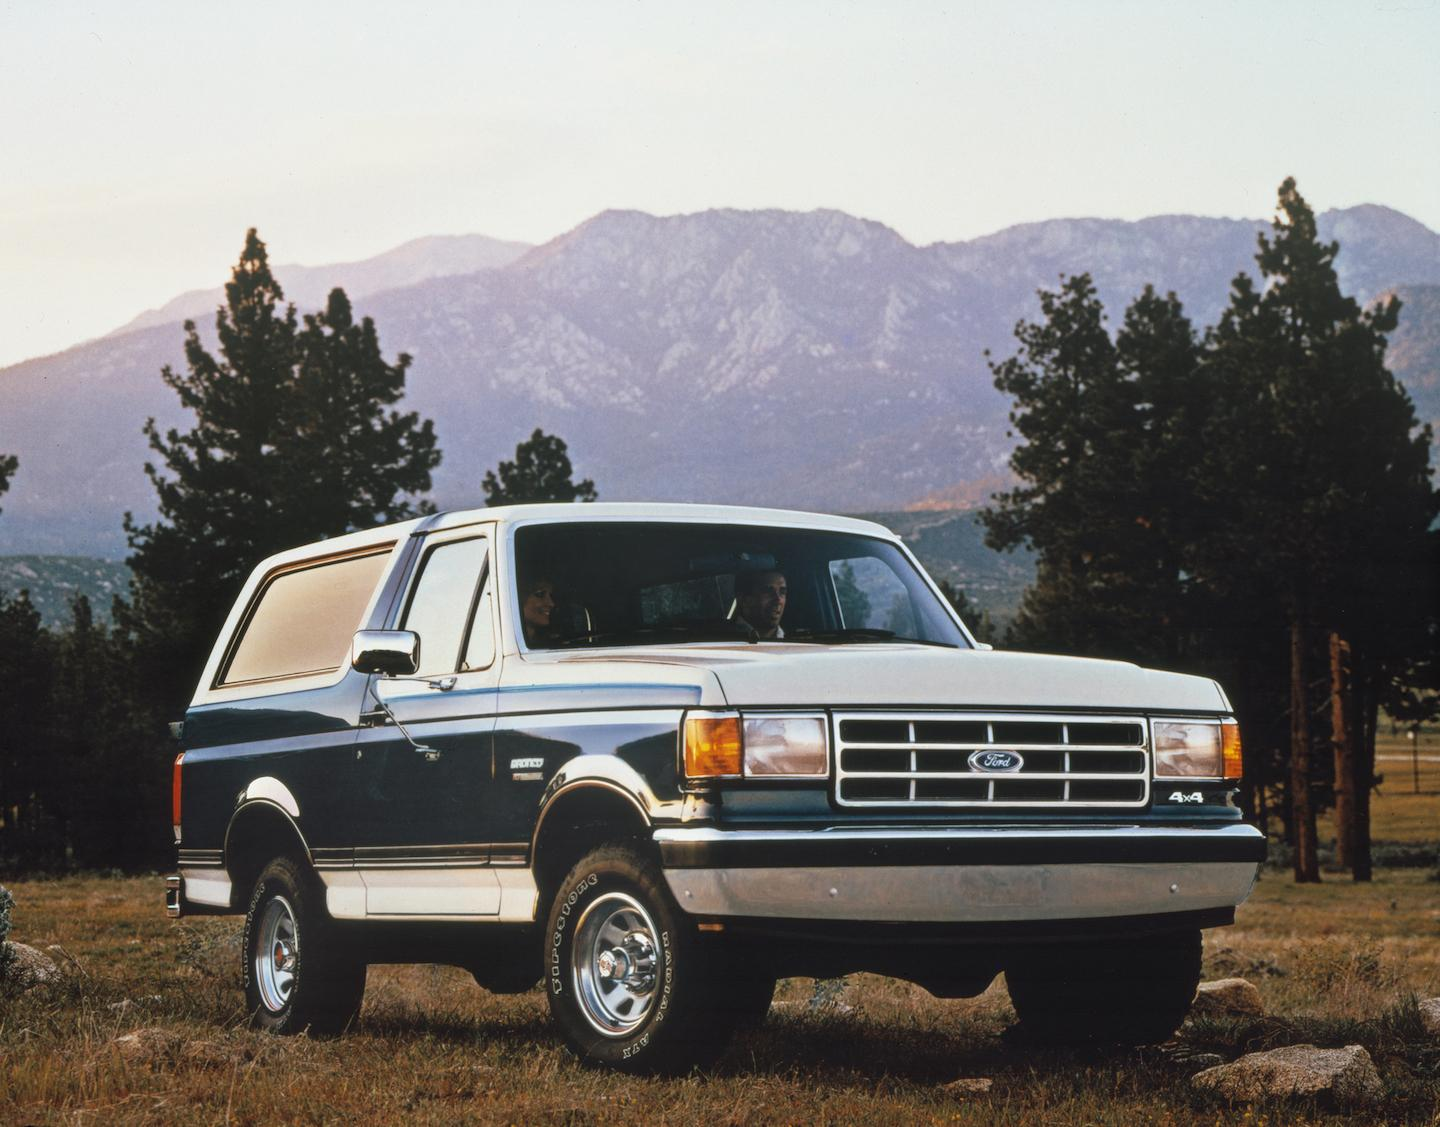 fourth-generation Ford Bronco, Ford Bronco, Bronco, fourth-generation Bronco